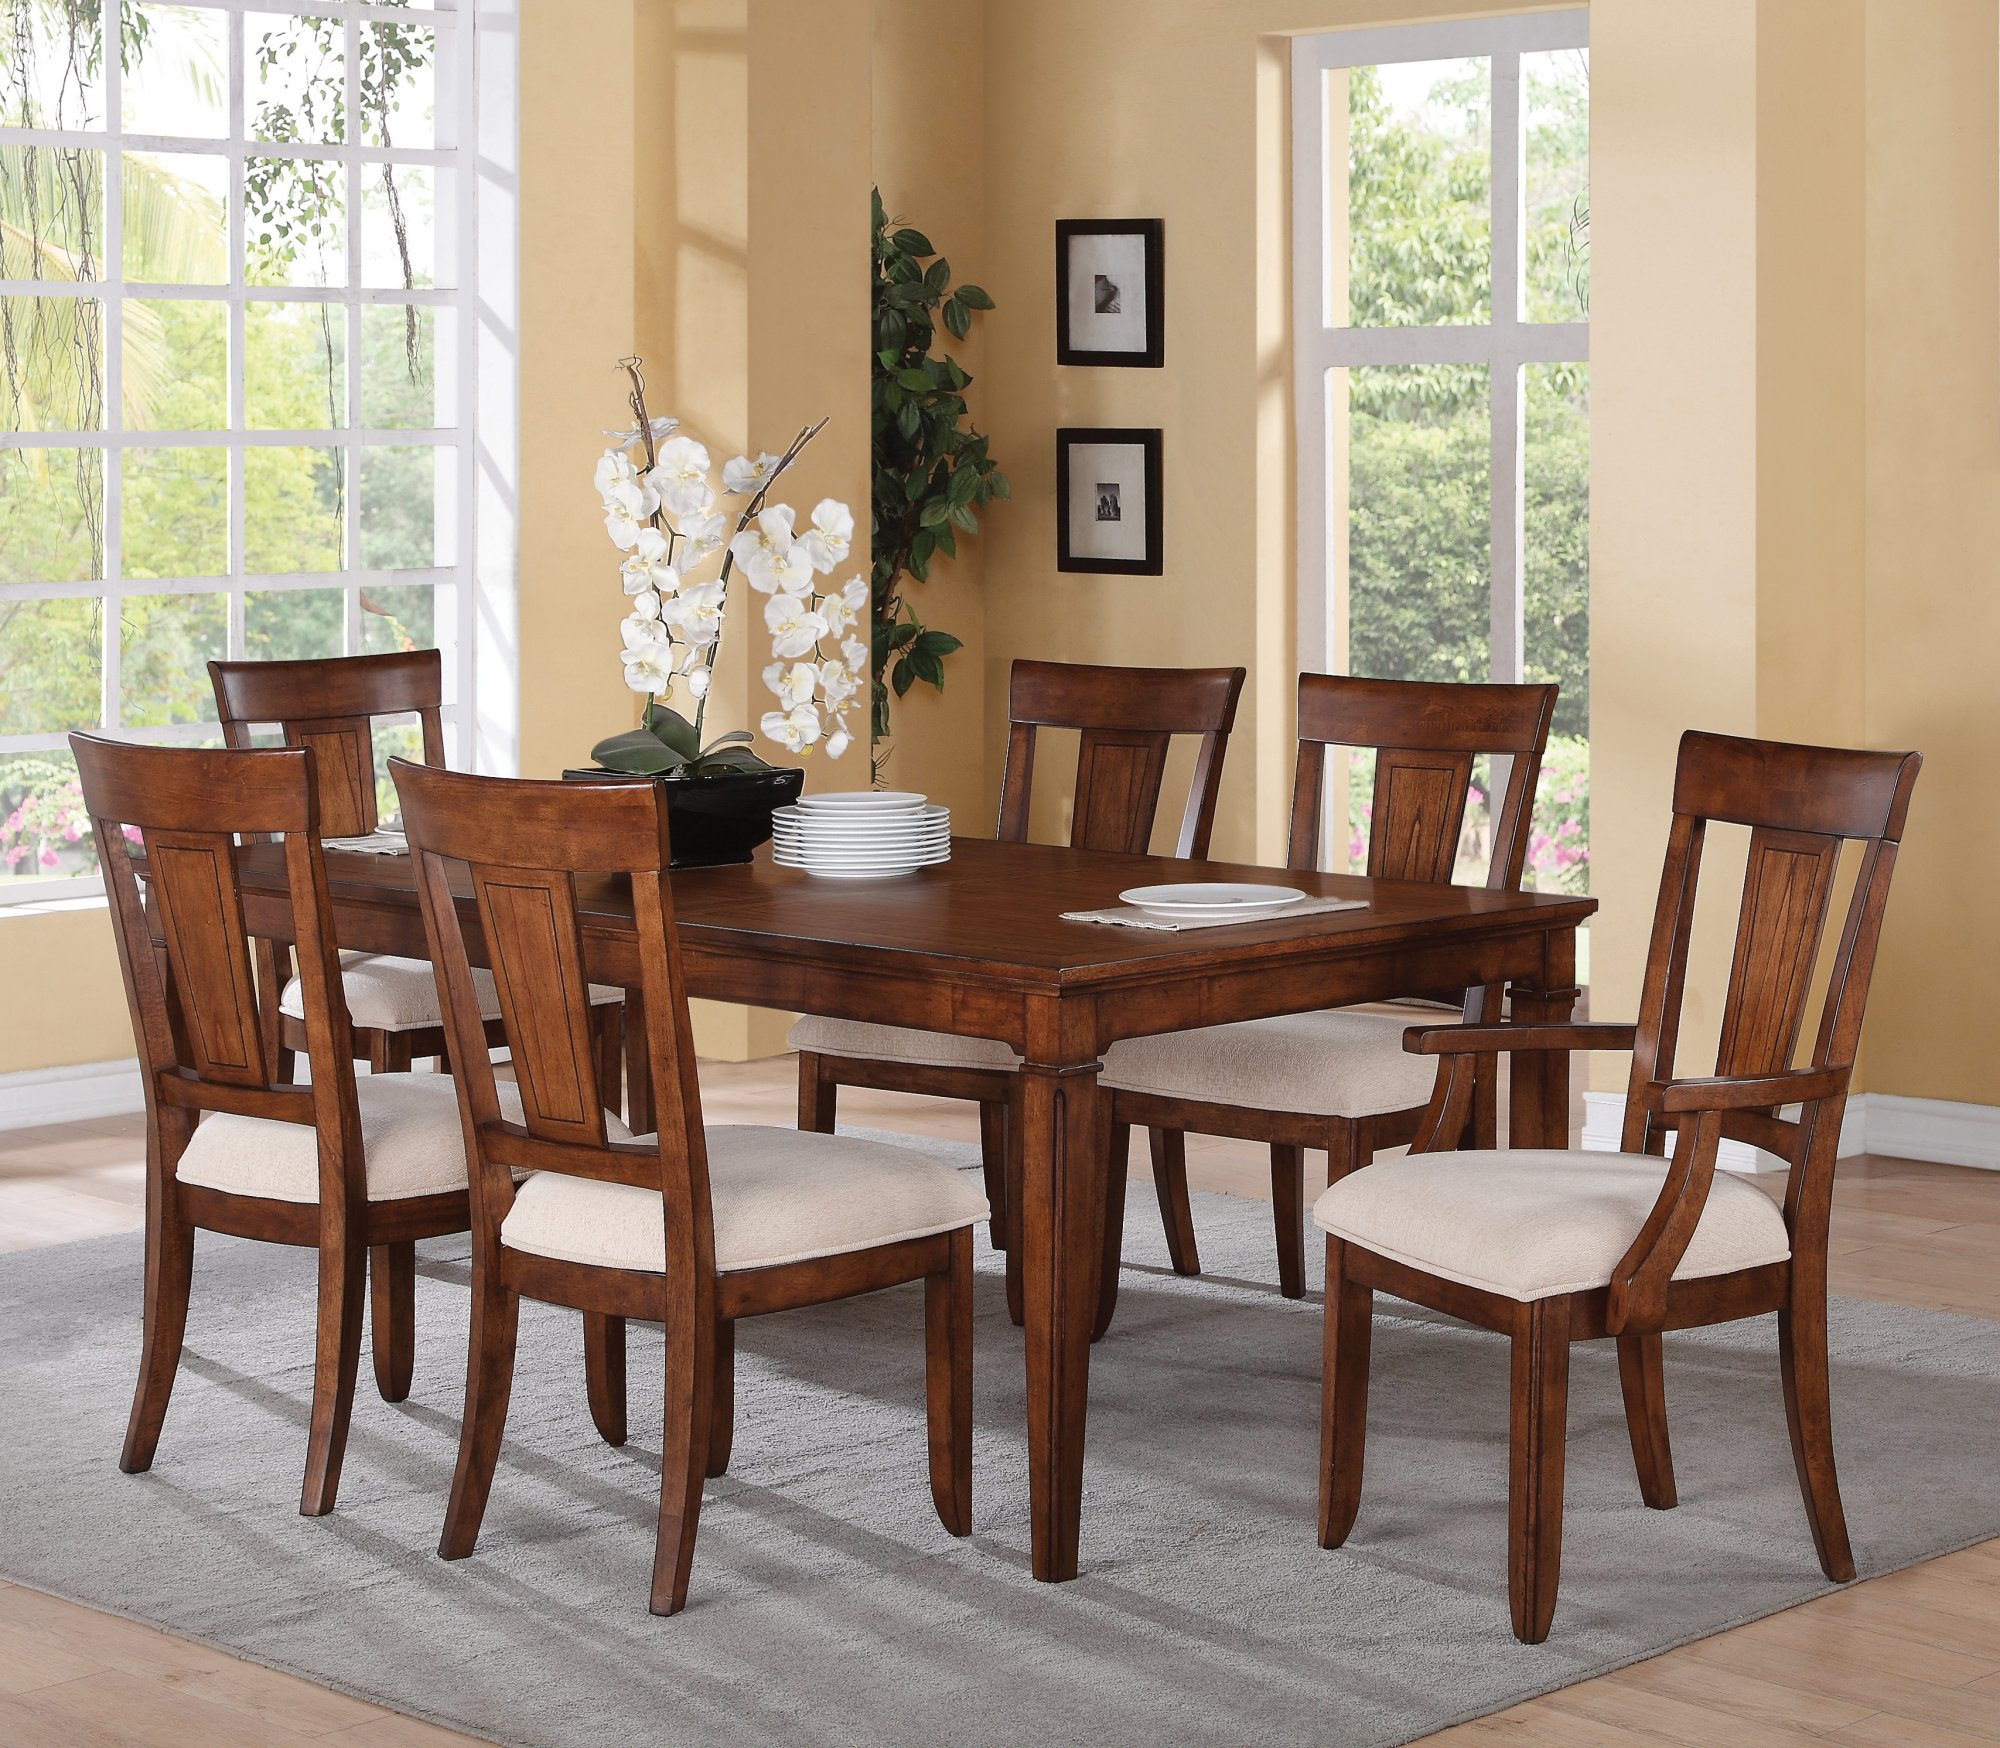 ... Dining Table W1572 830. Share Via Email Download A High Resolution Image Part 63